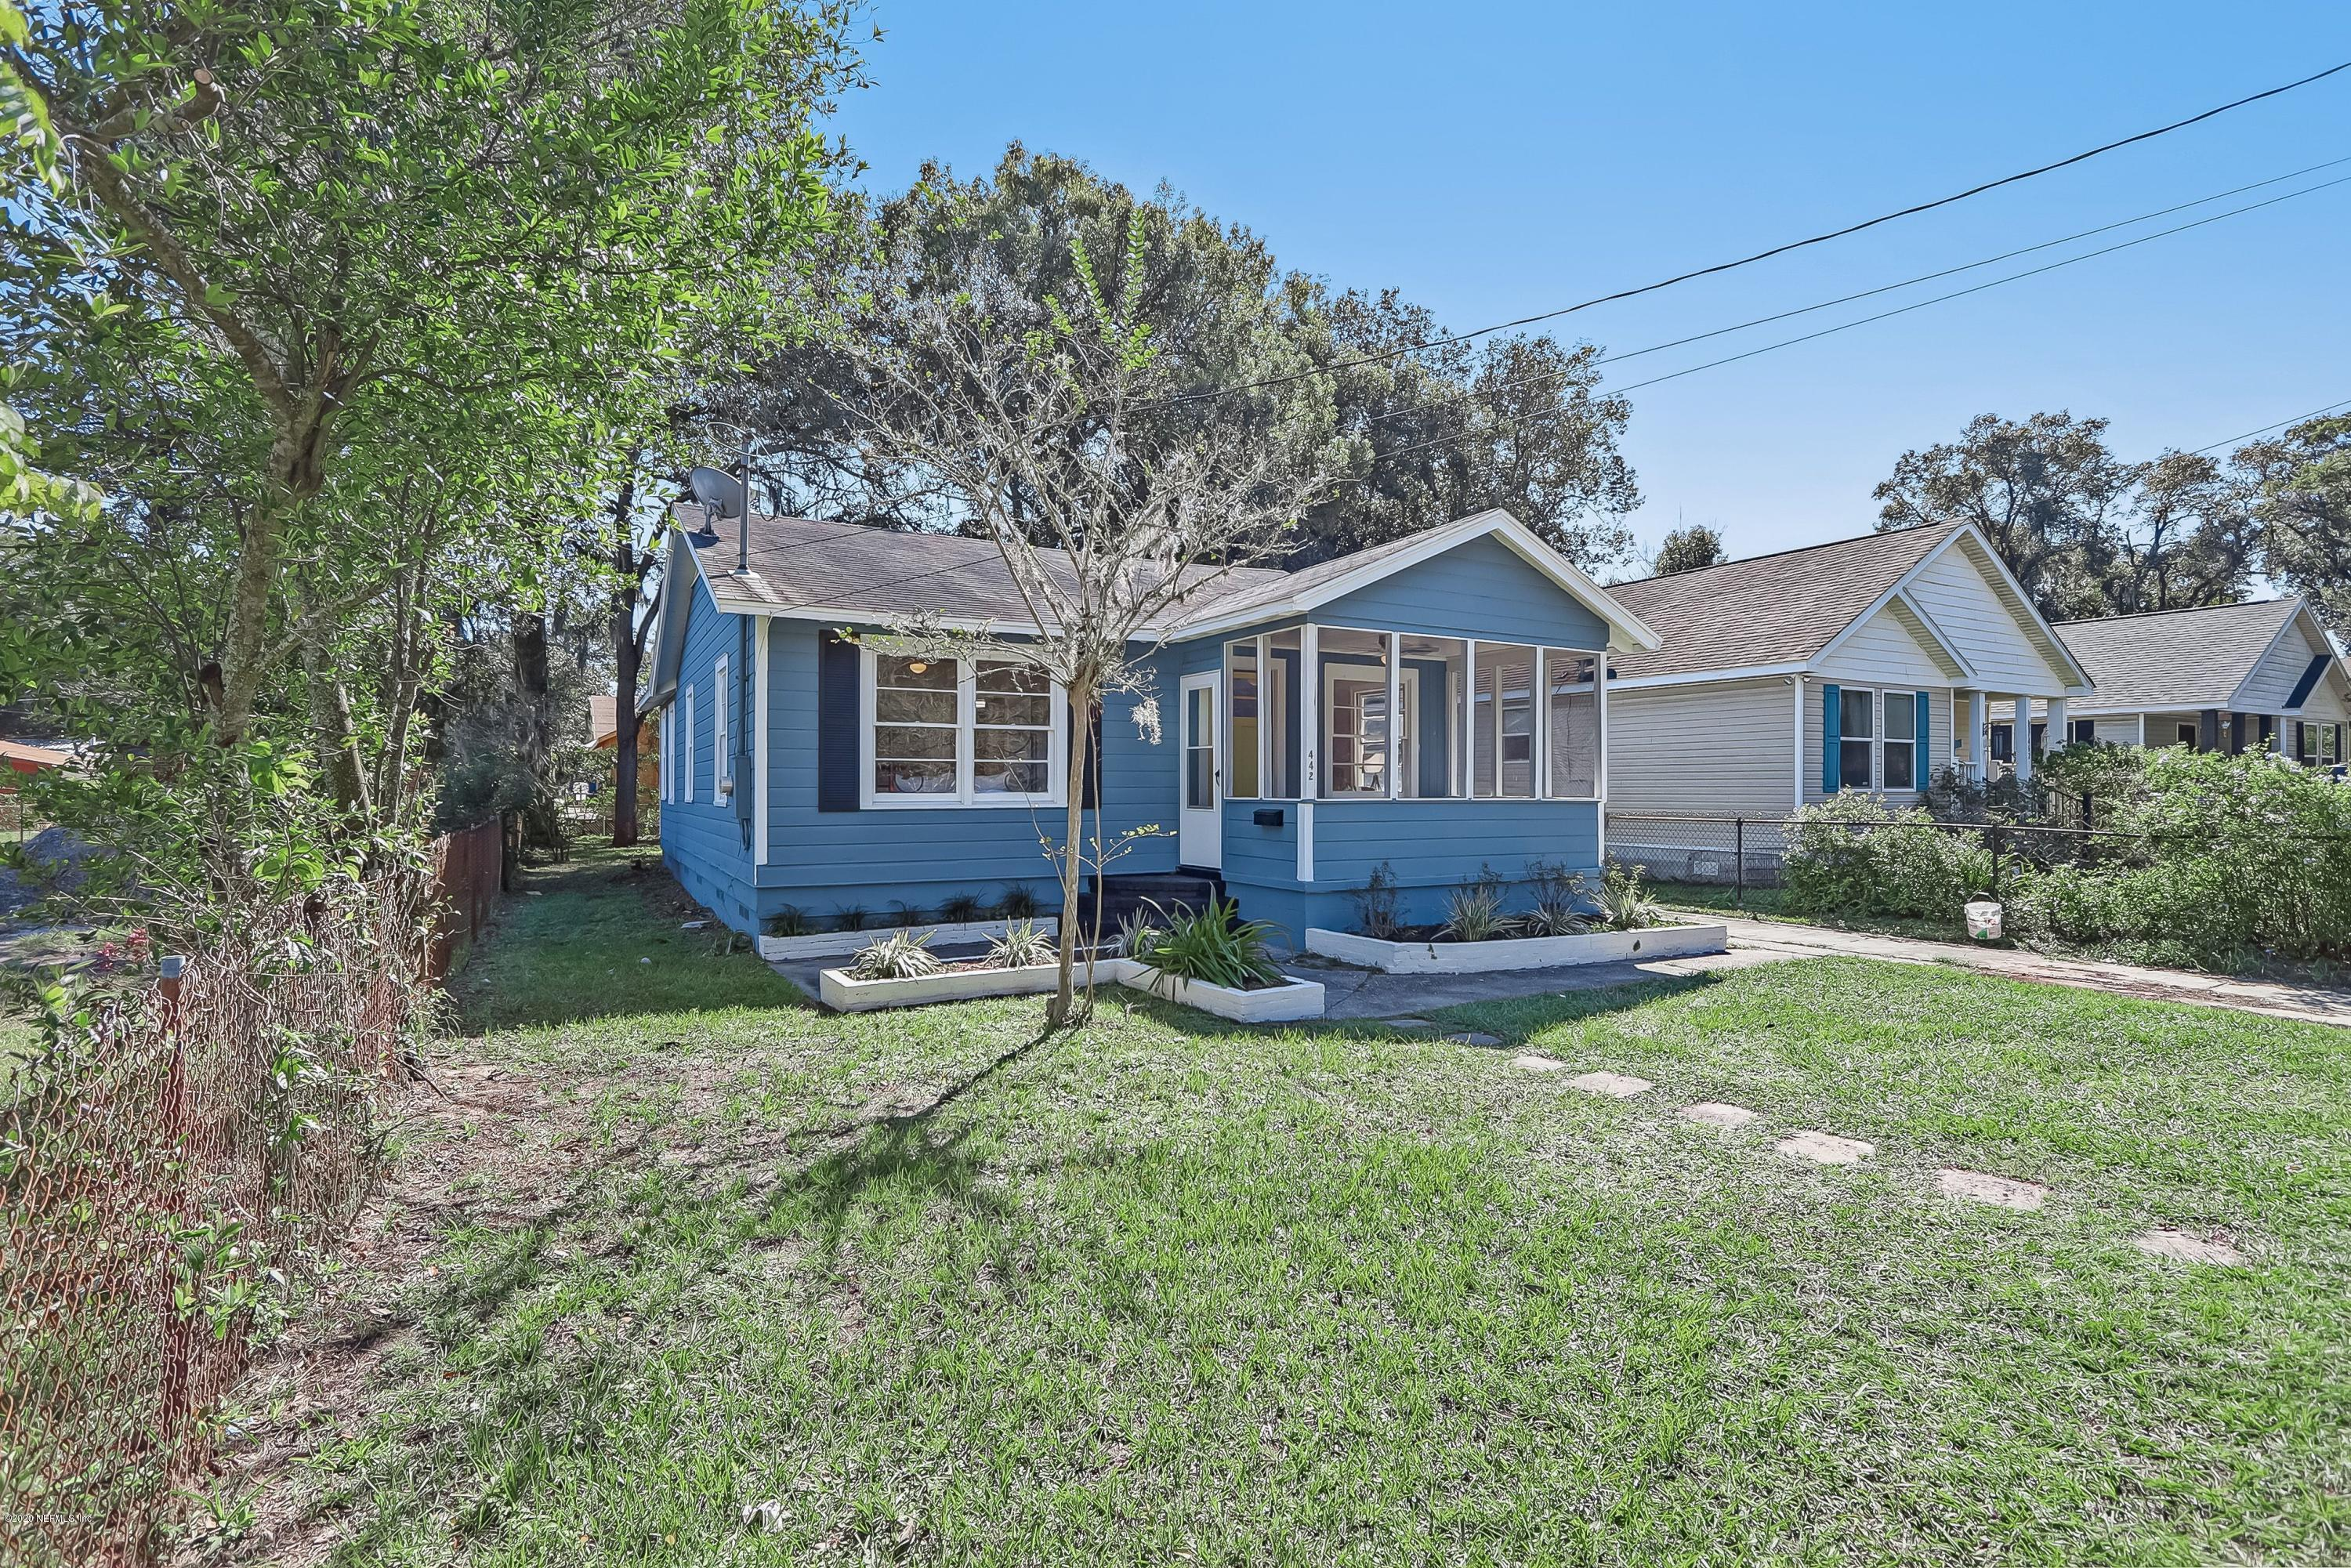 442 61ST, JACKSONVILLE, FLORIDA 32208, 3 Bedrooms Bedrooms, ,1 BathroomBathrooms,Residential,For sale,61ST,1081369